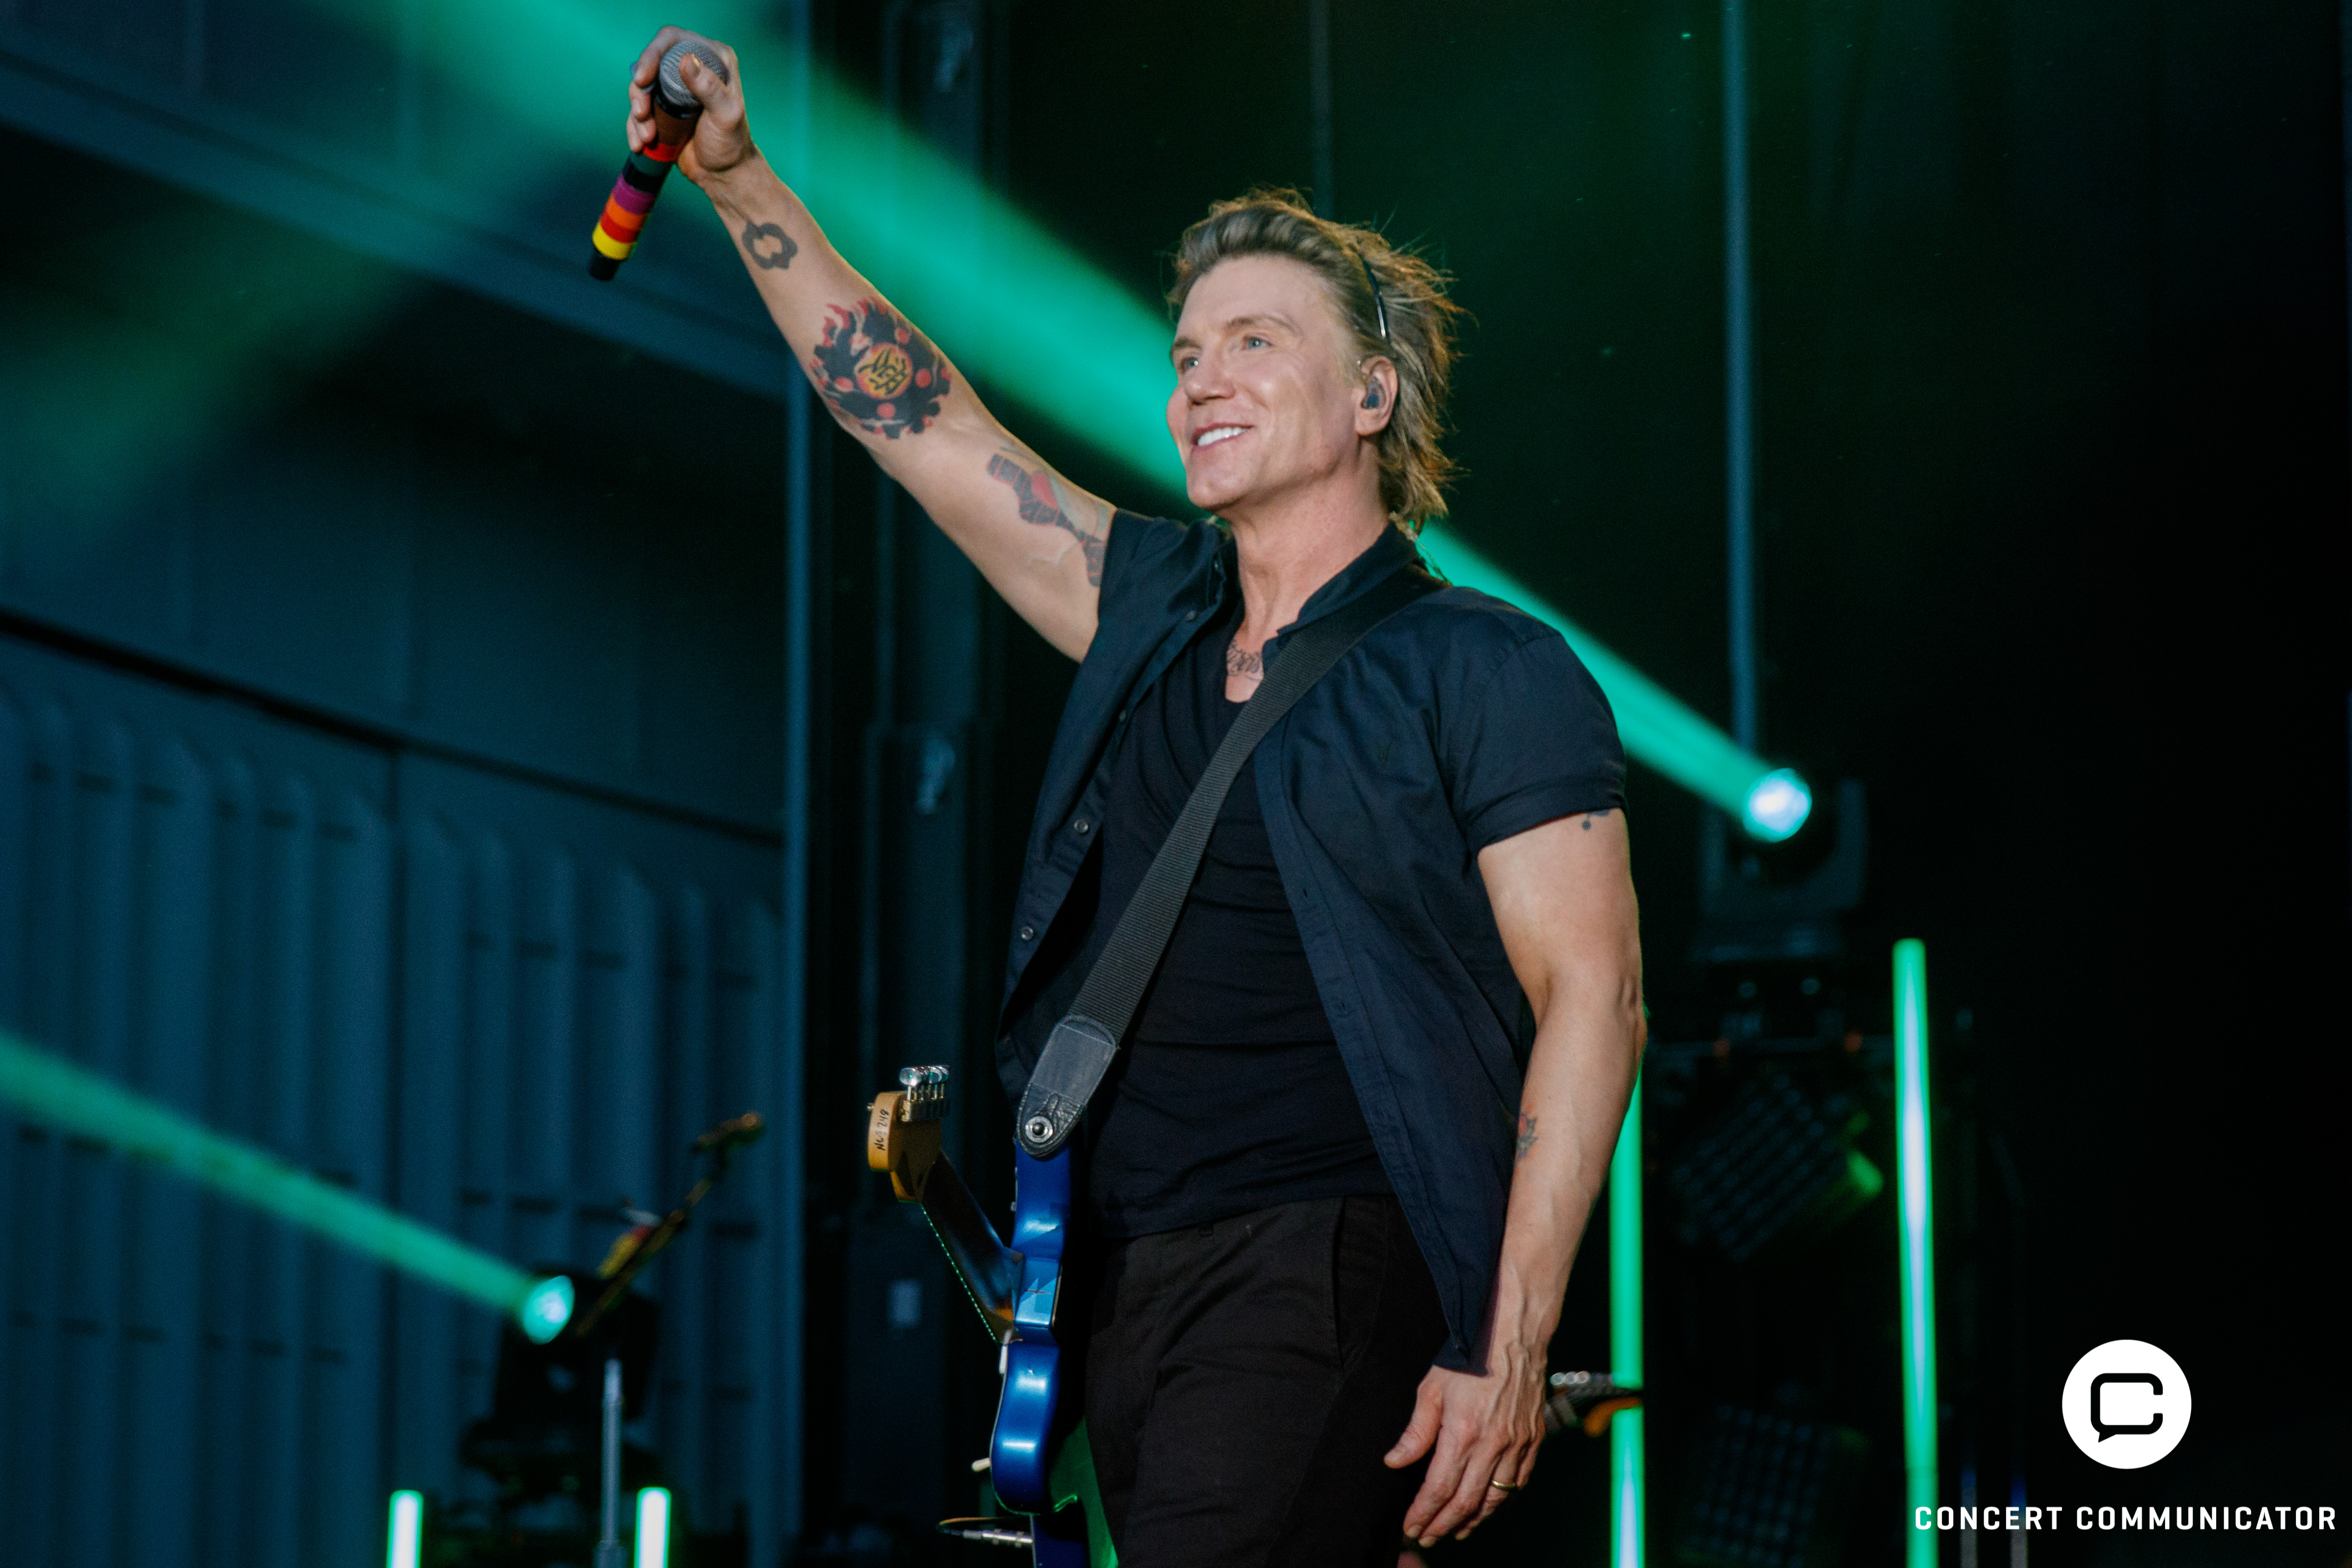 Goo Goo Dolls @ Live at the Hilde